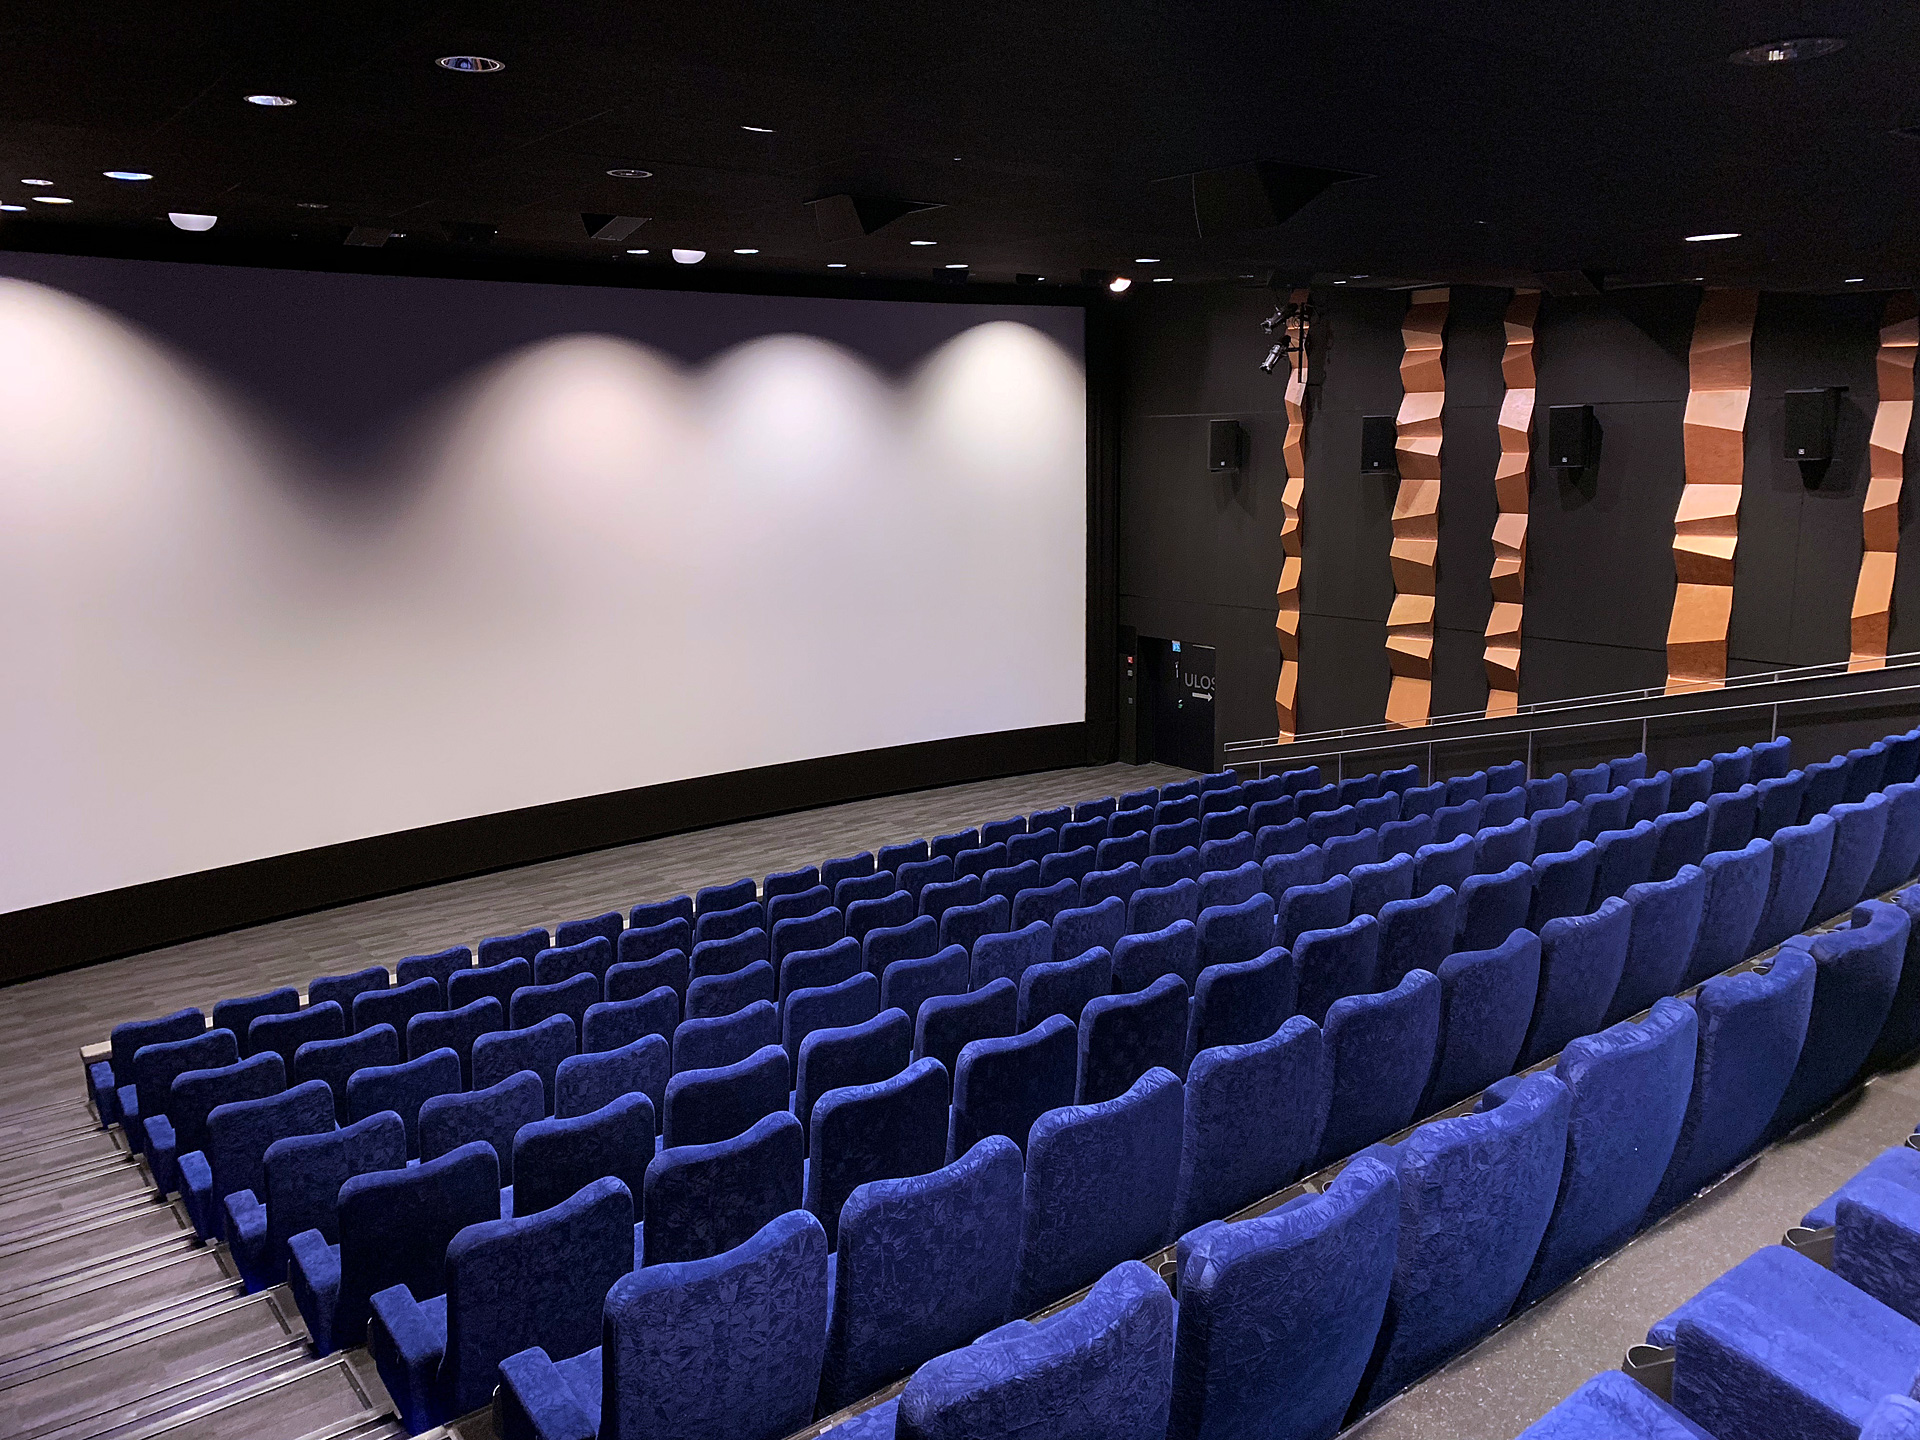 Acoustic design maximizes the cinema experience